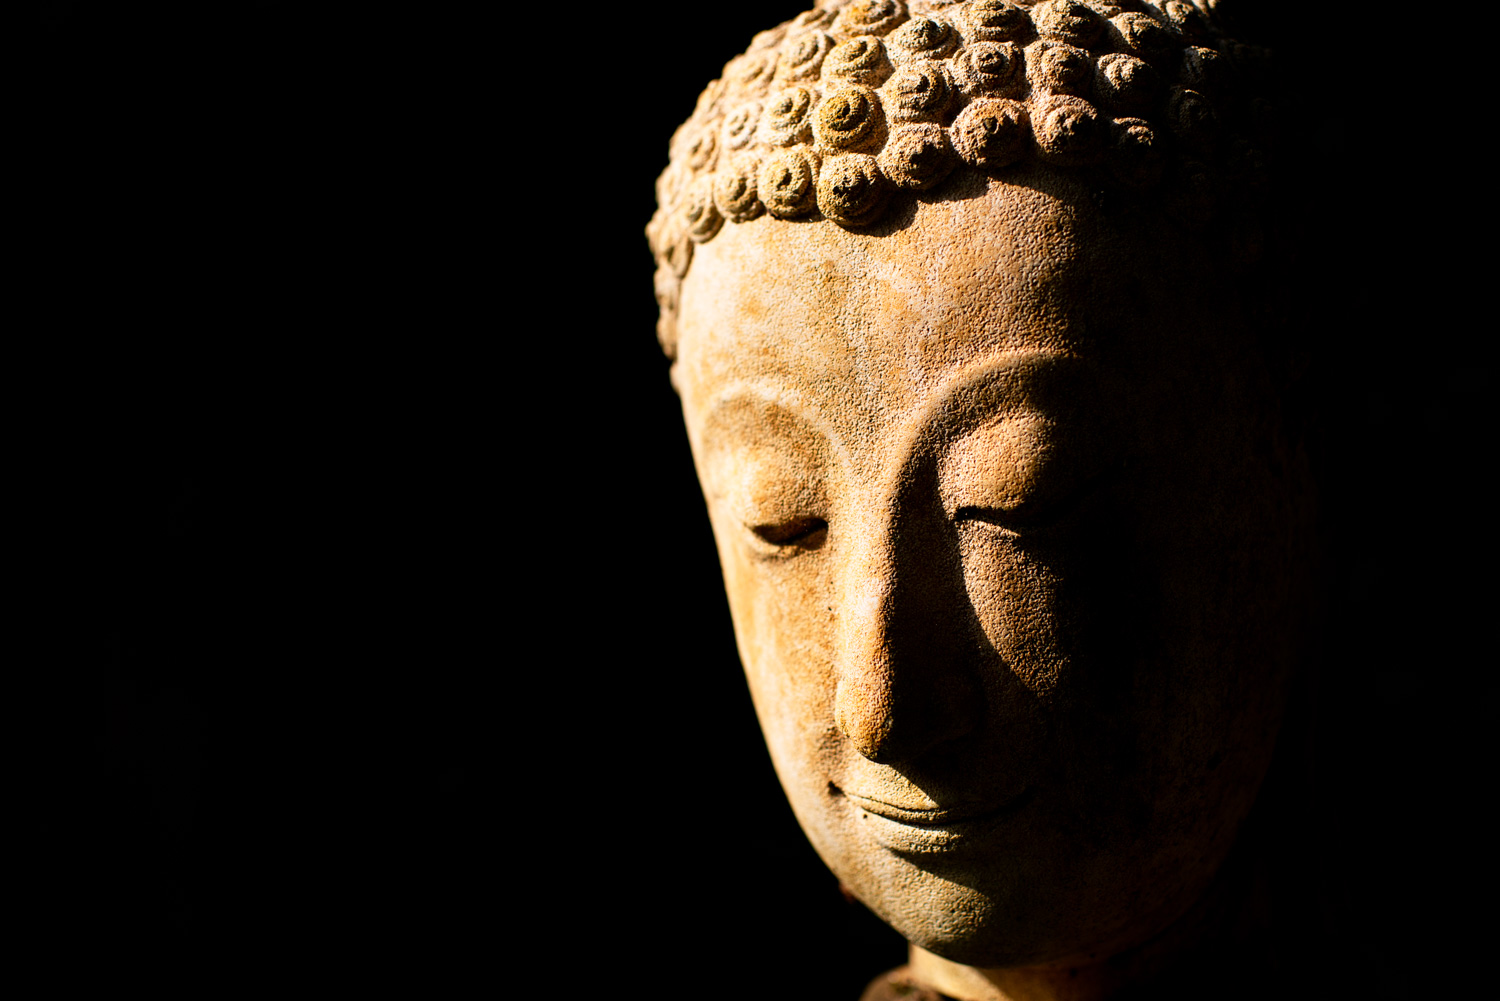 Buddha statue for Expose your photos